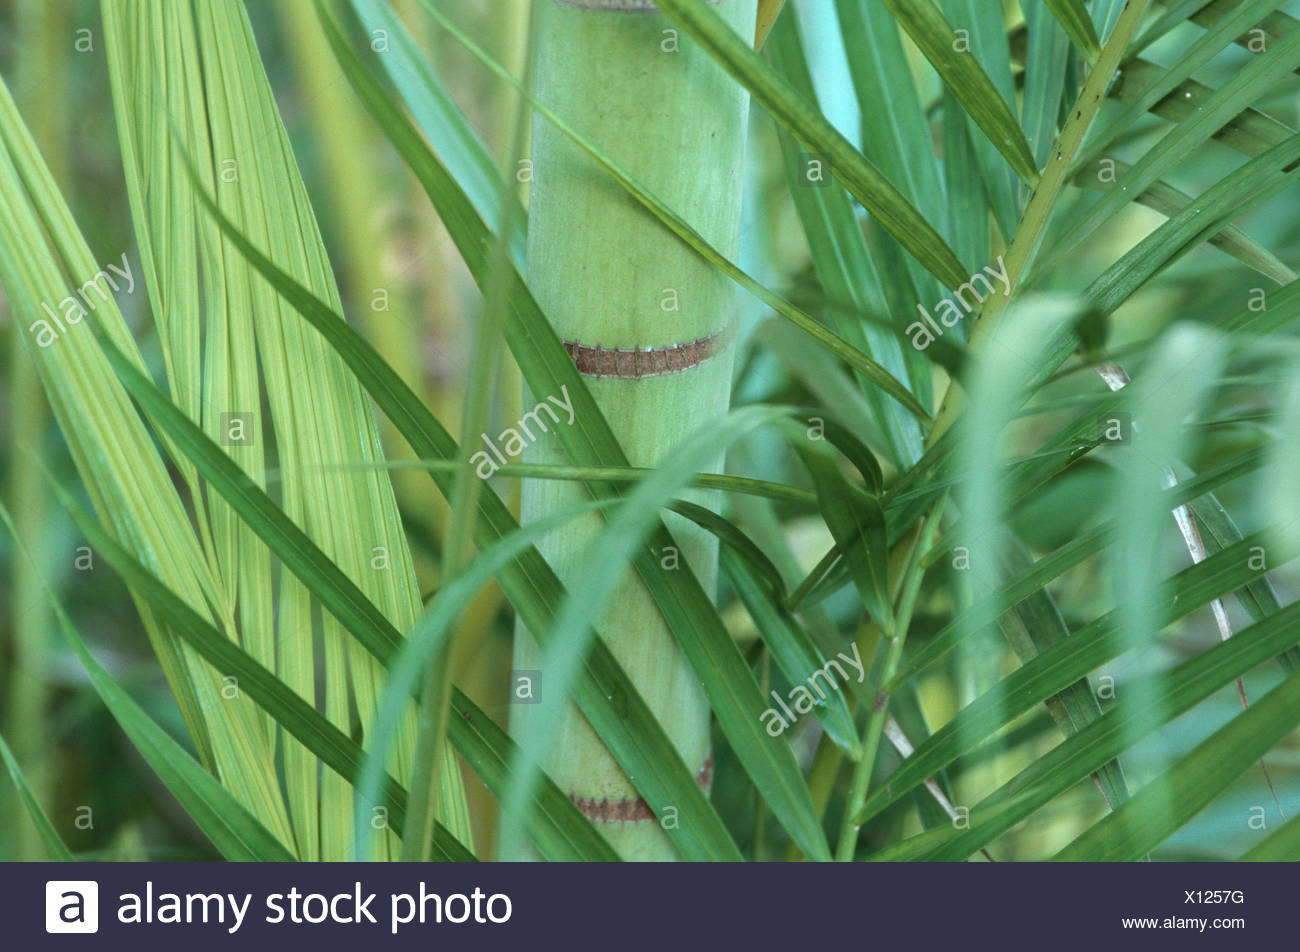 Yellow Palm Areca Palm Chrysalidocarpus Lutescens Areca Lutescens Stock Photos And Areca Lutescens Stock